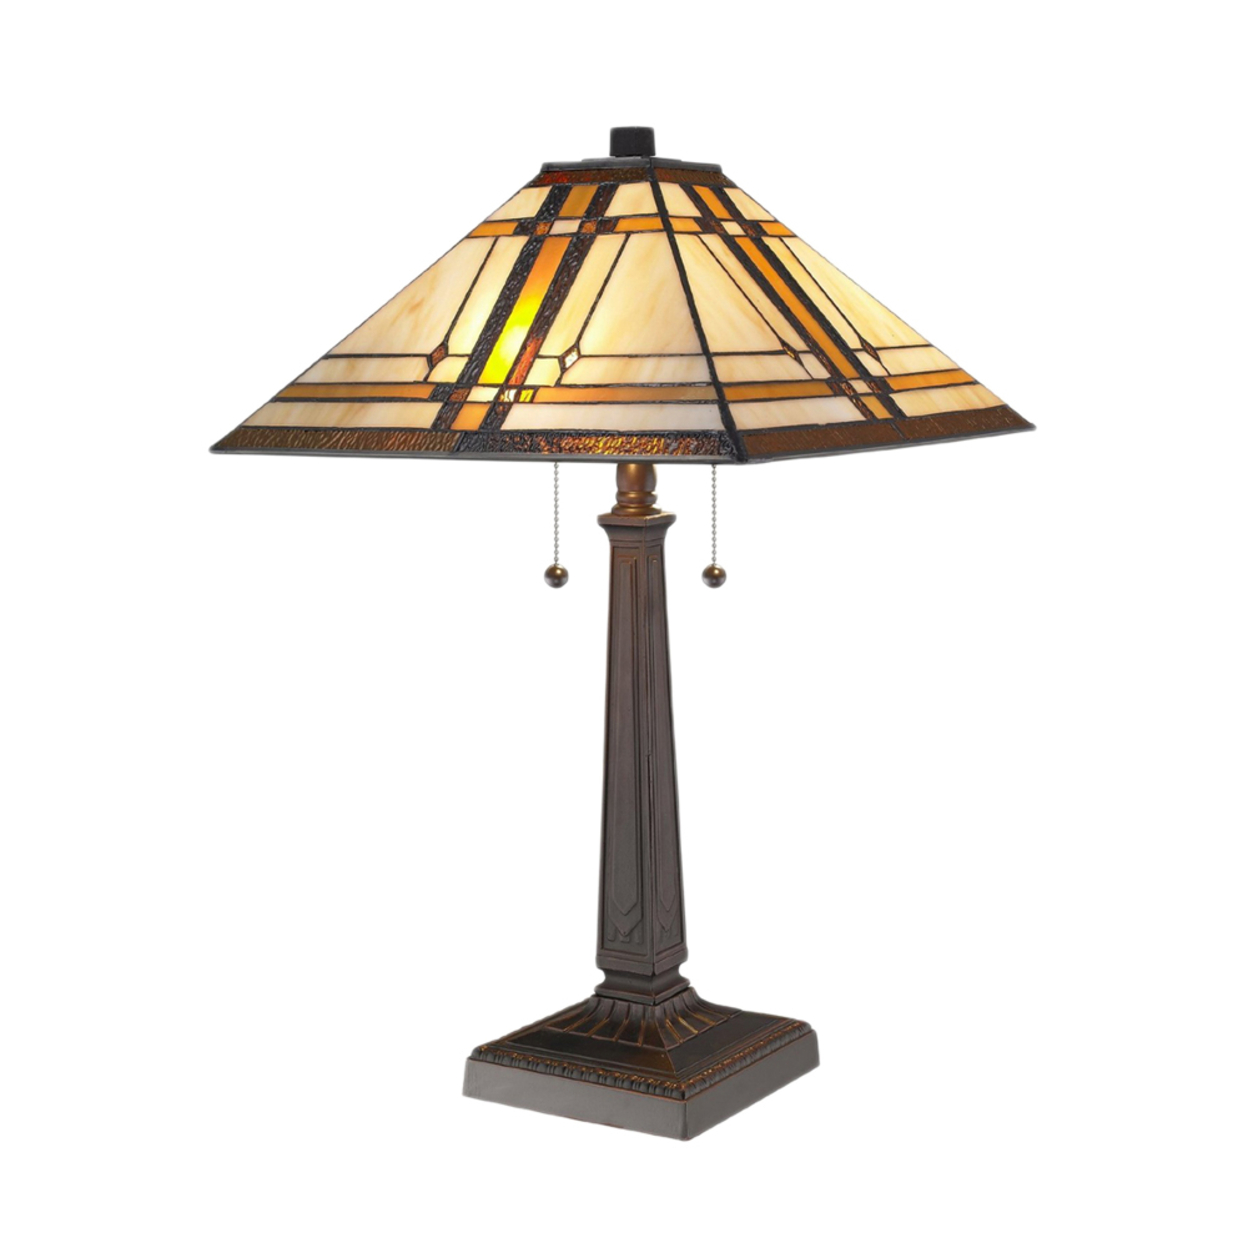 Amora Lighting Am1053Tl14 Tiffany Style Mission Table Lamp 22 Inches Tall